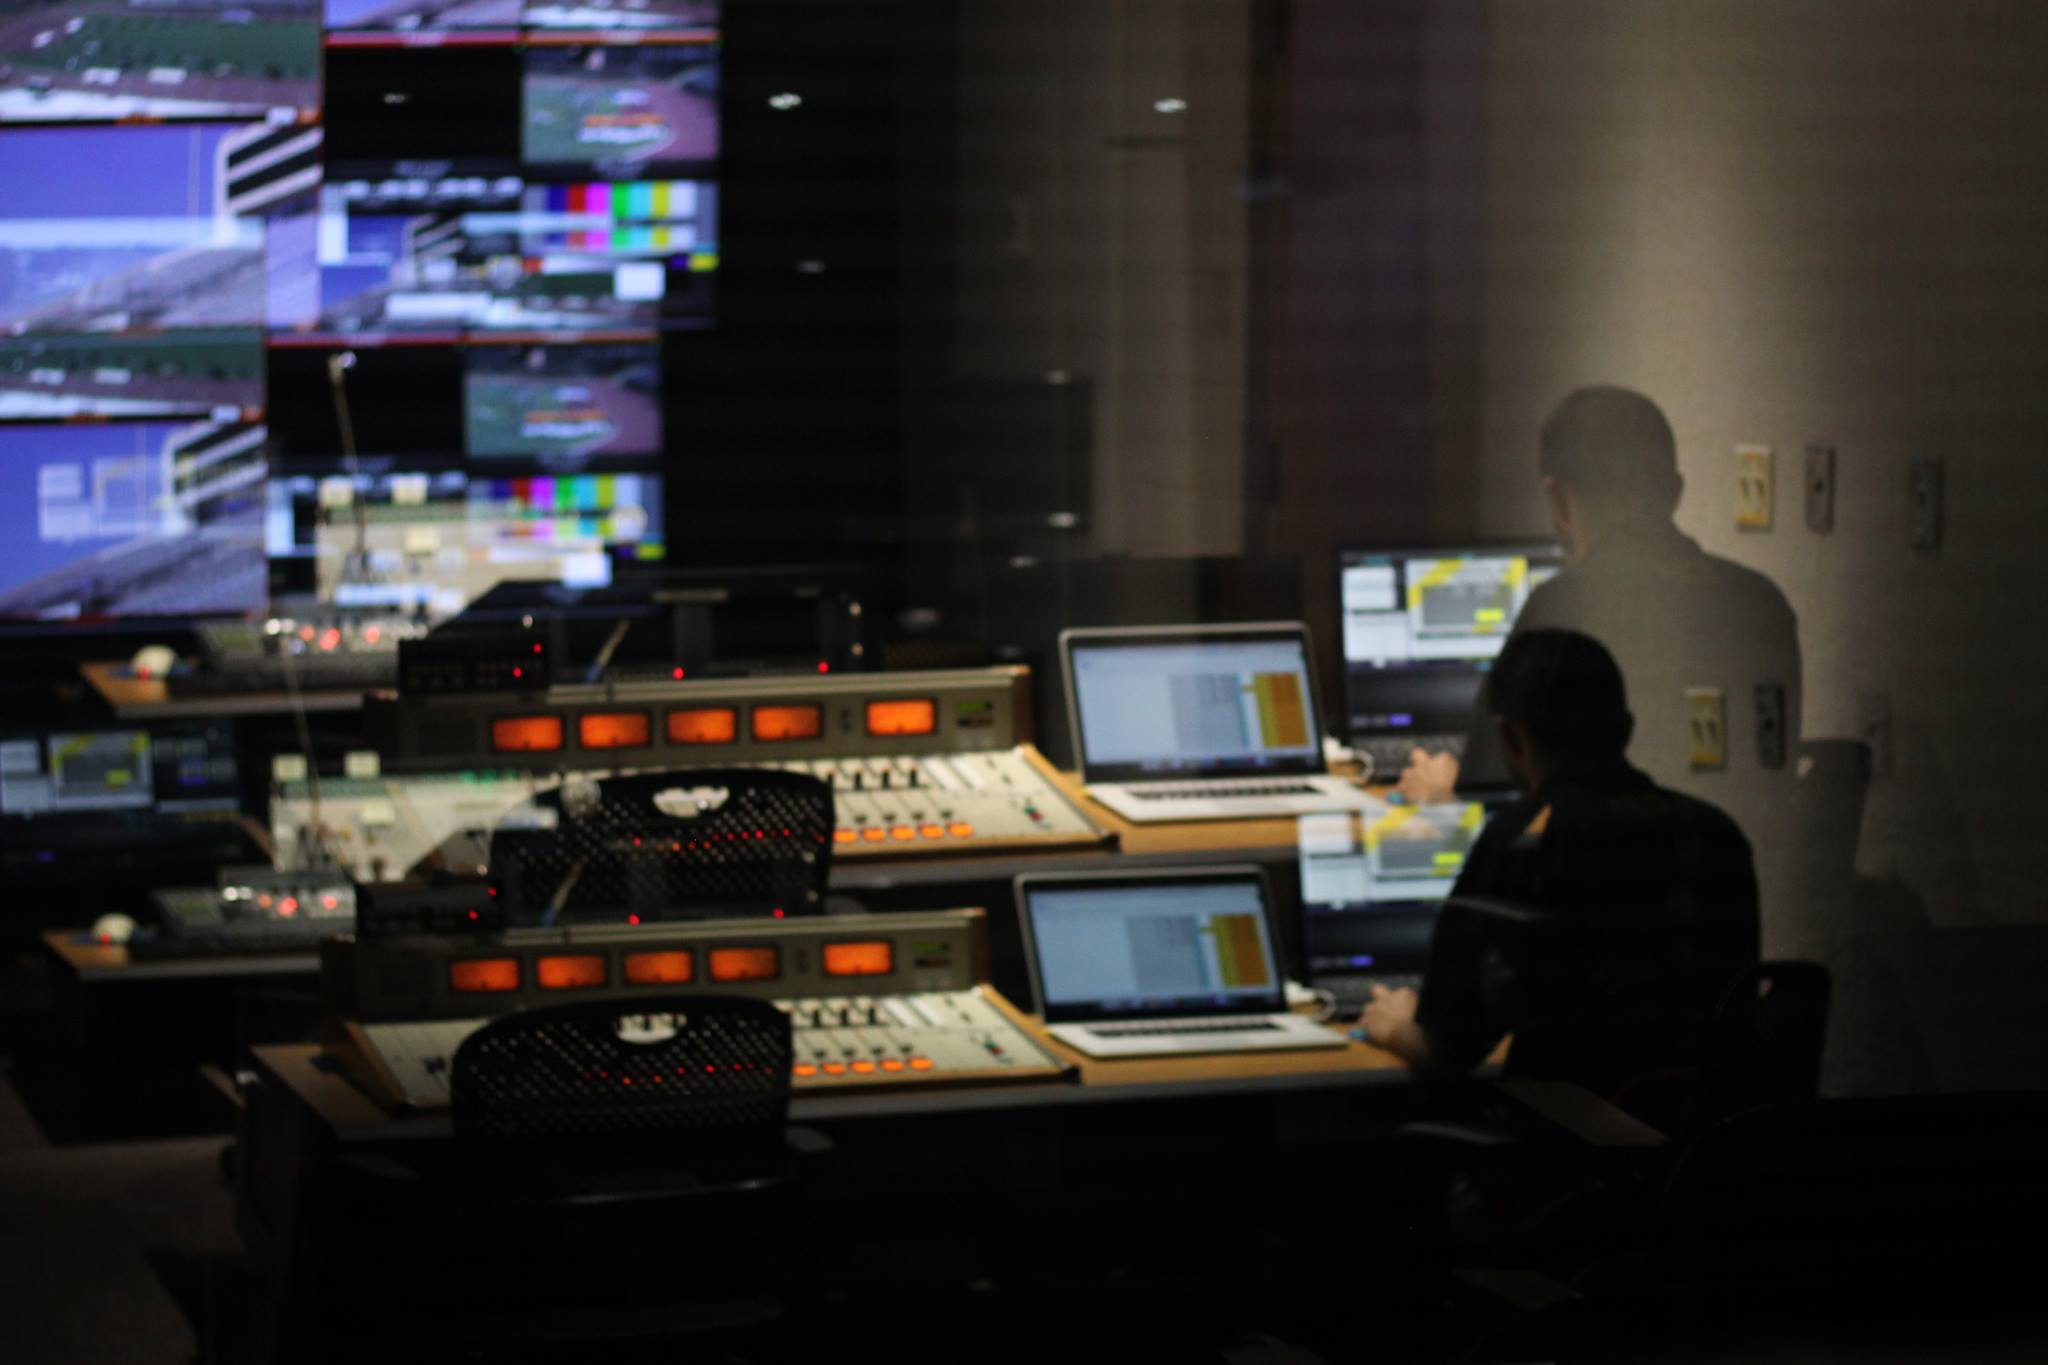 The WSU TV Studio control room